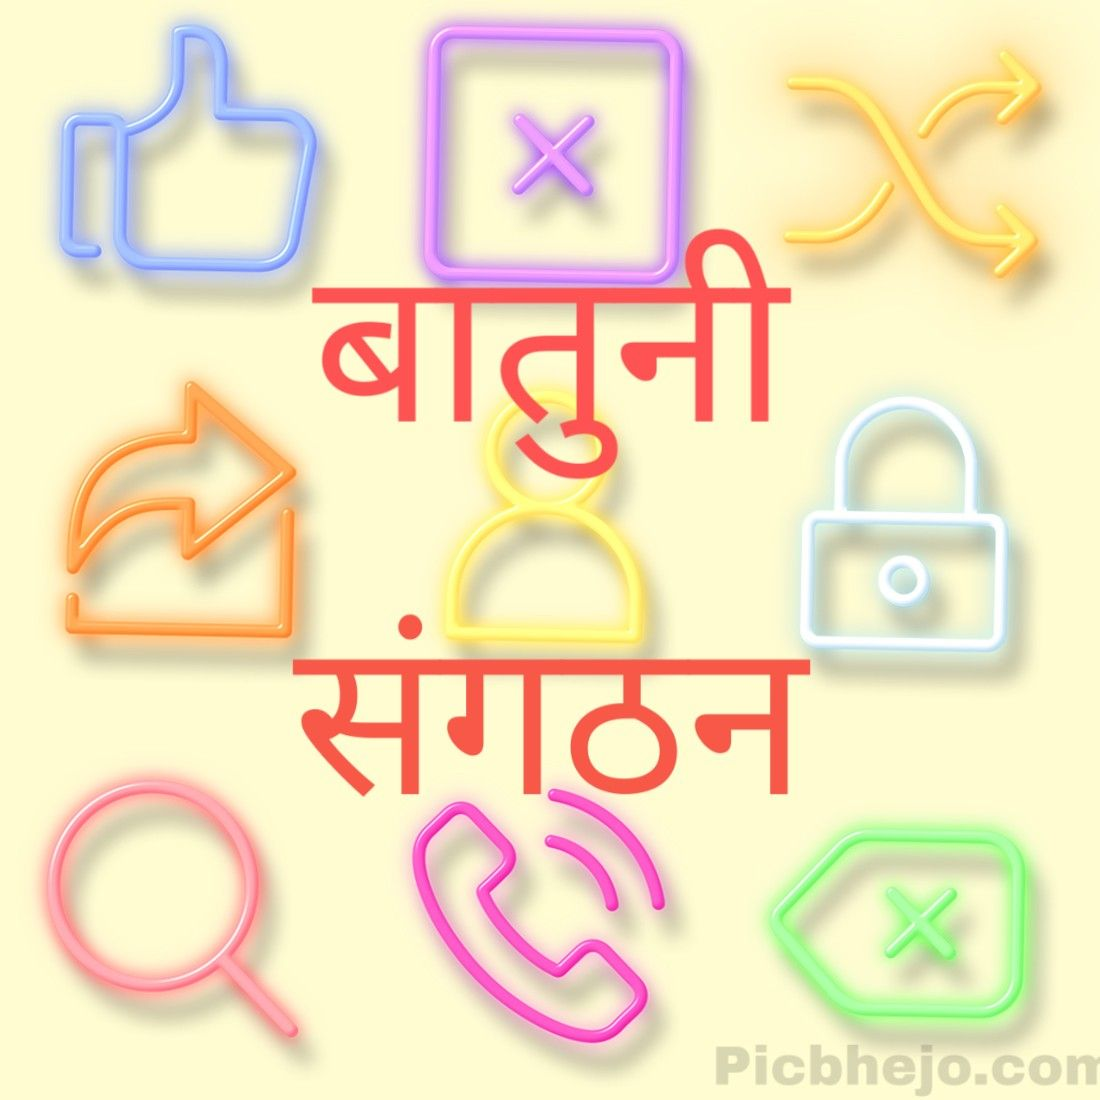 151 Download Groups Dp For Whatsapp In Hindi Hd Pictures Dp For Whatsapp Hd Picture Photo Frame Gallery